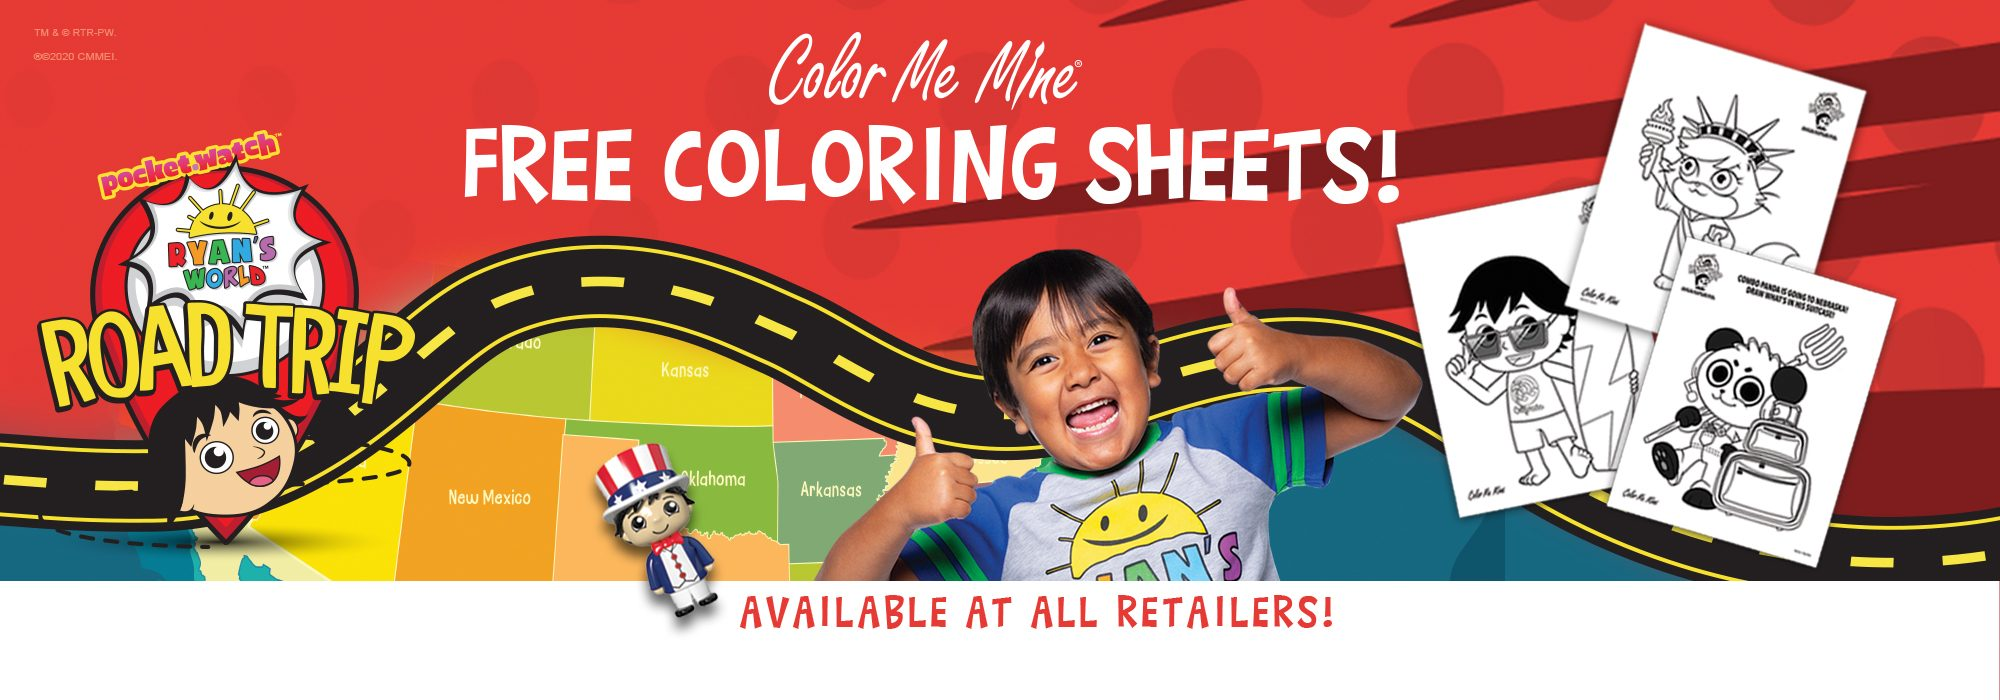 colormemine promotions